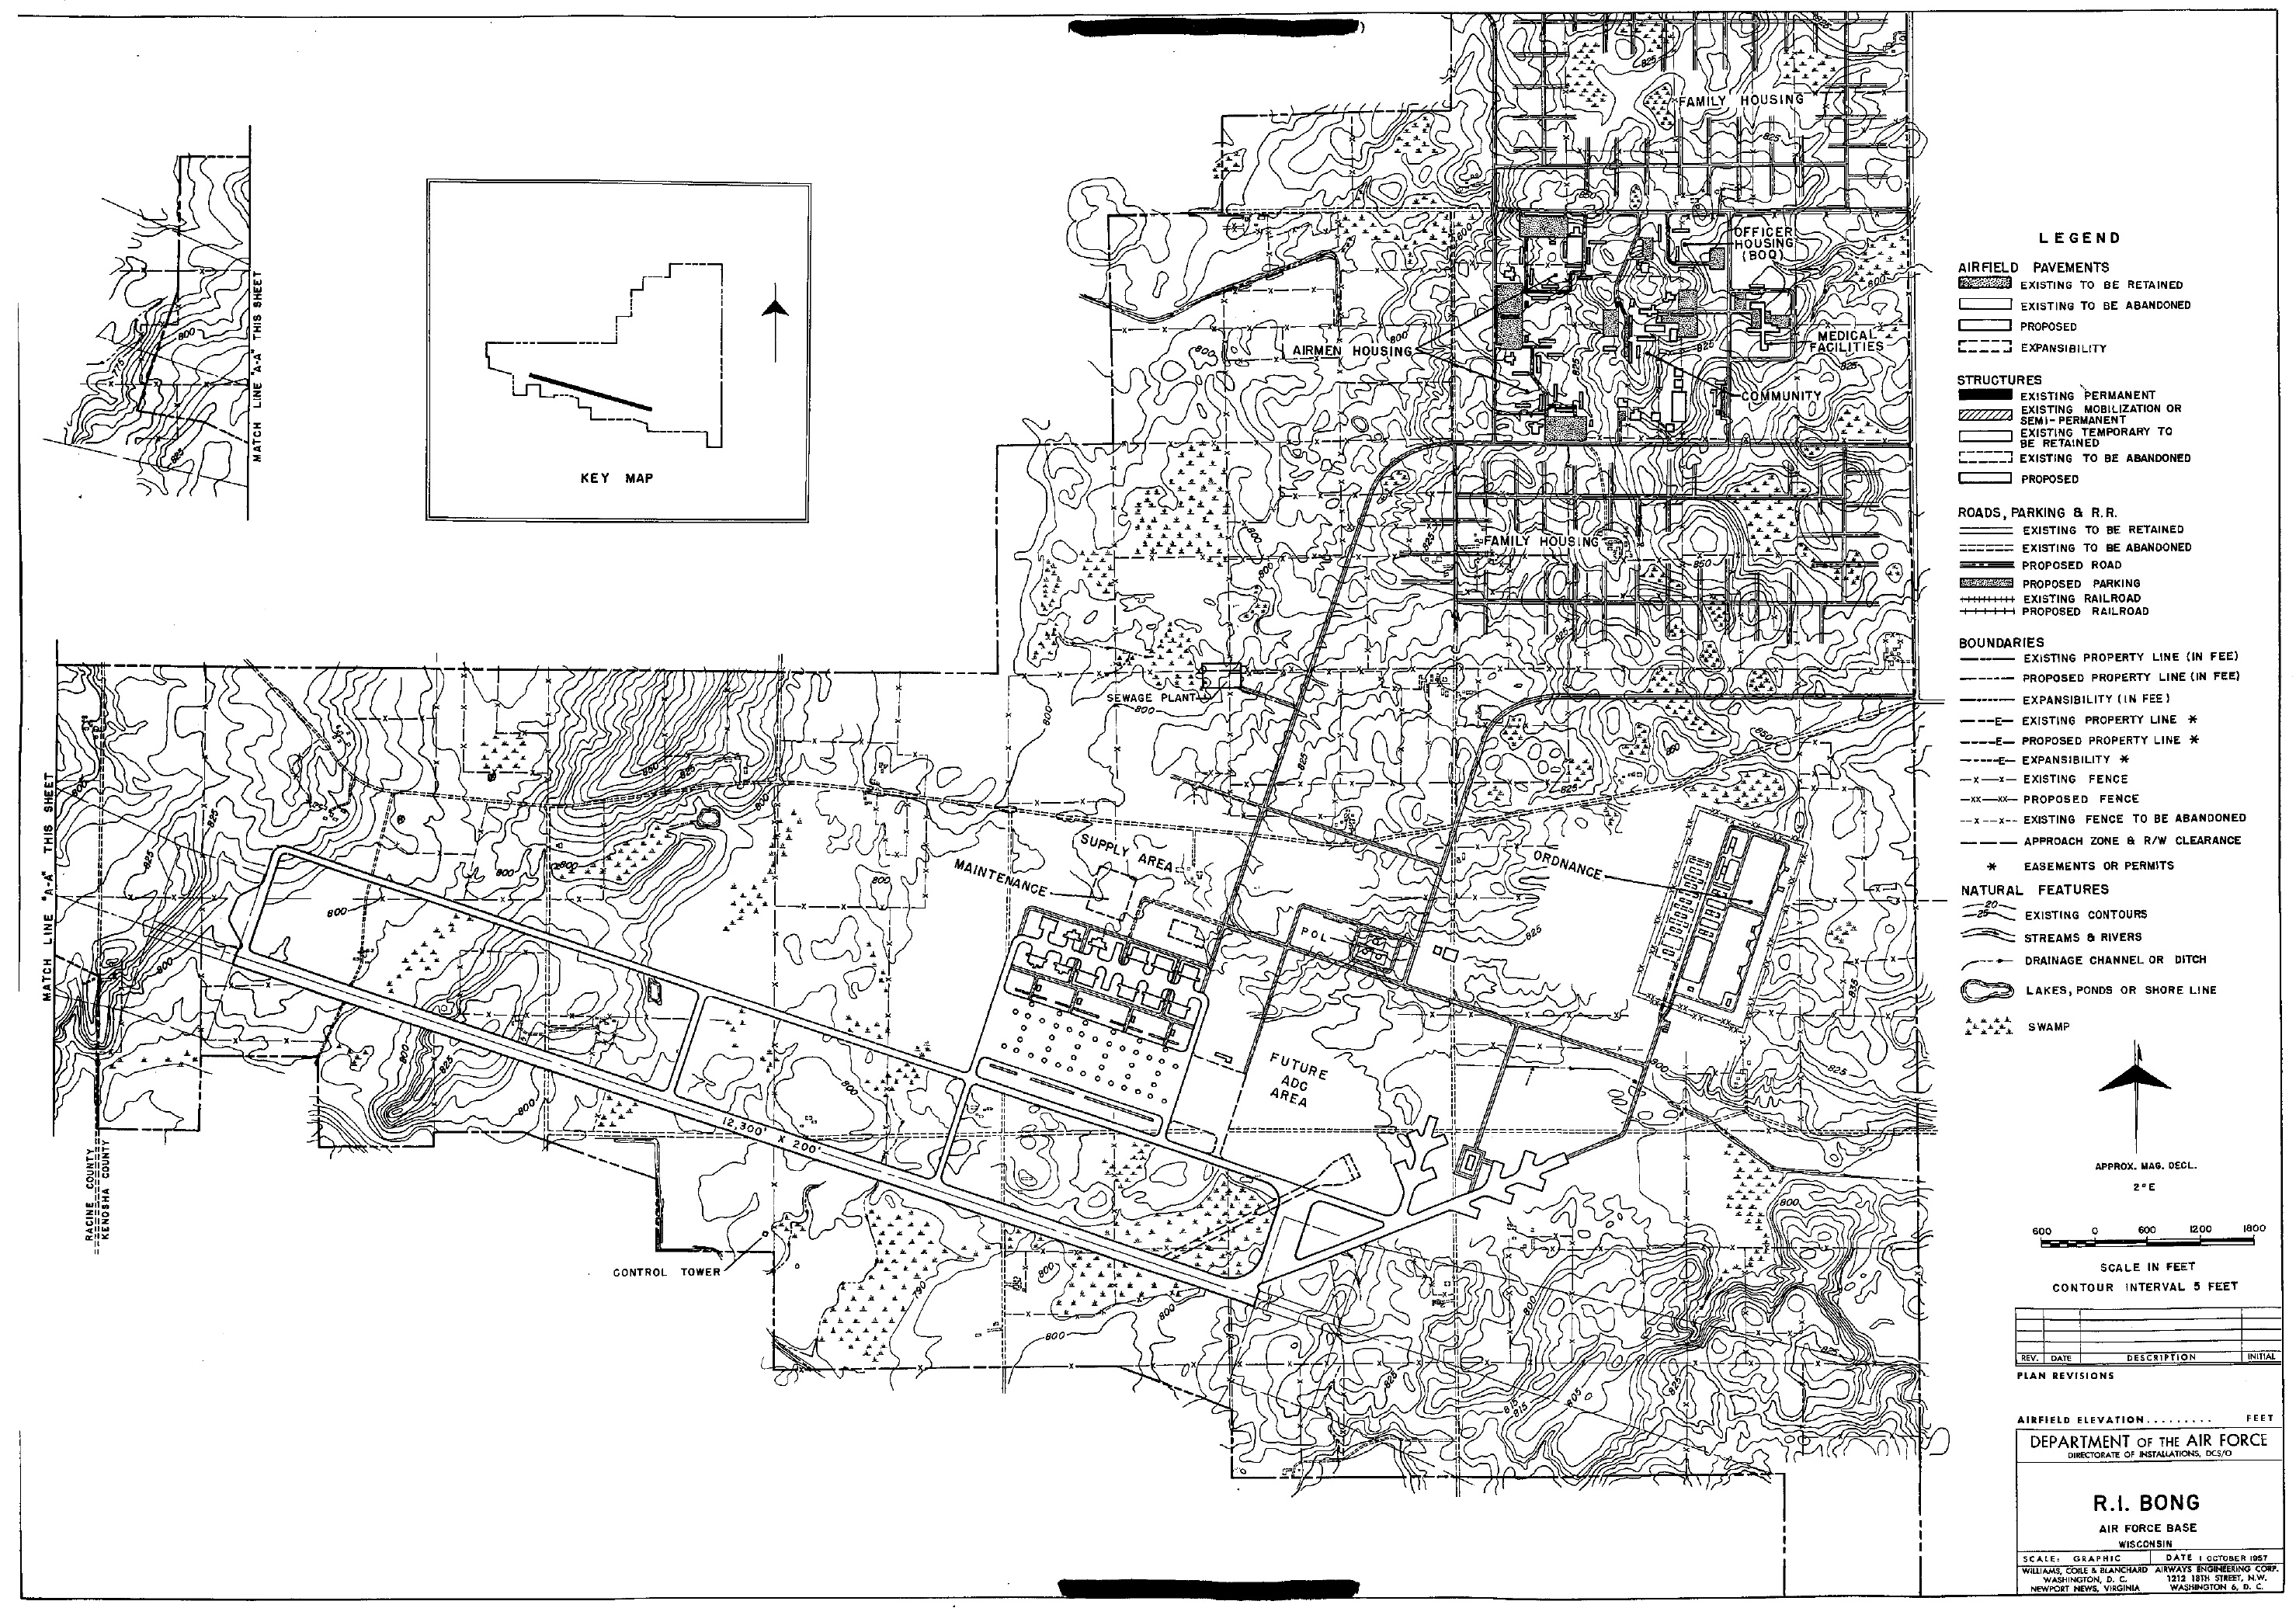 Tinker Afb Map Building